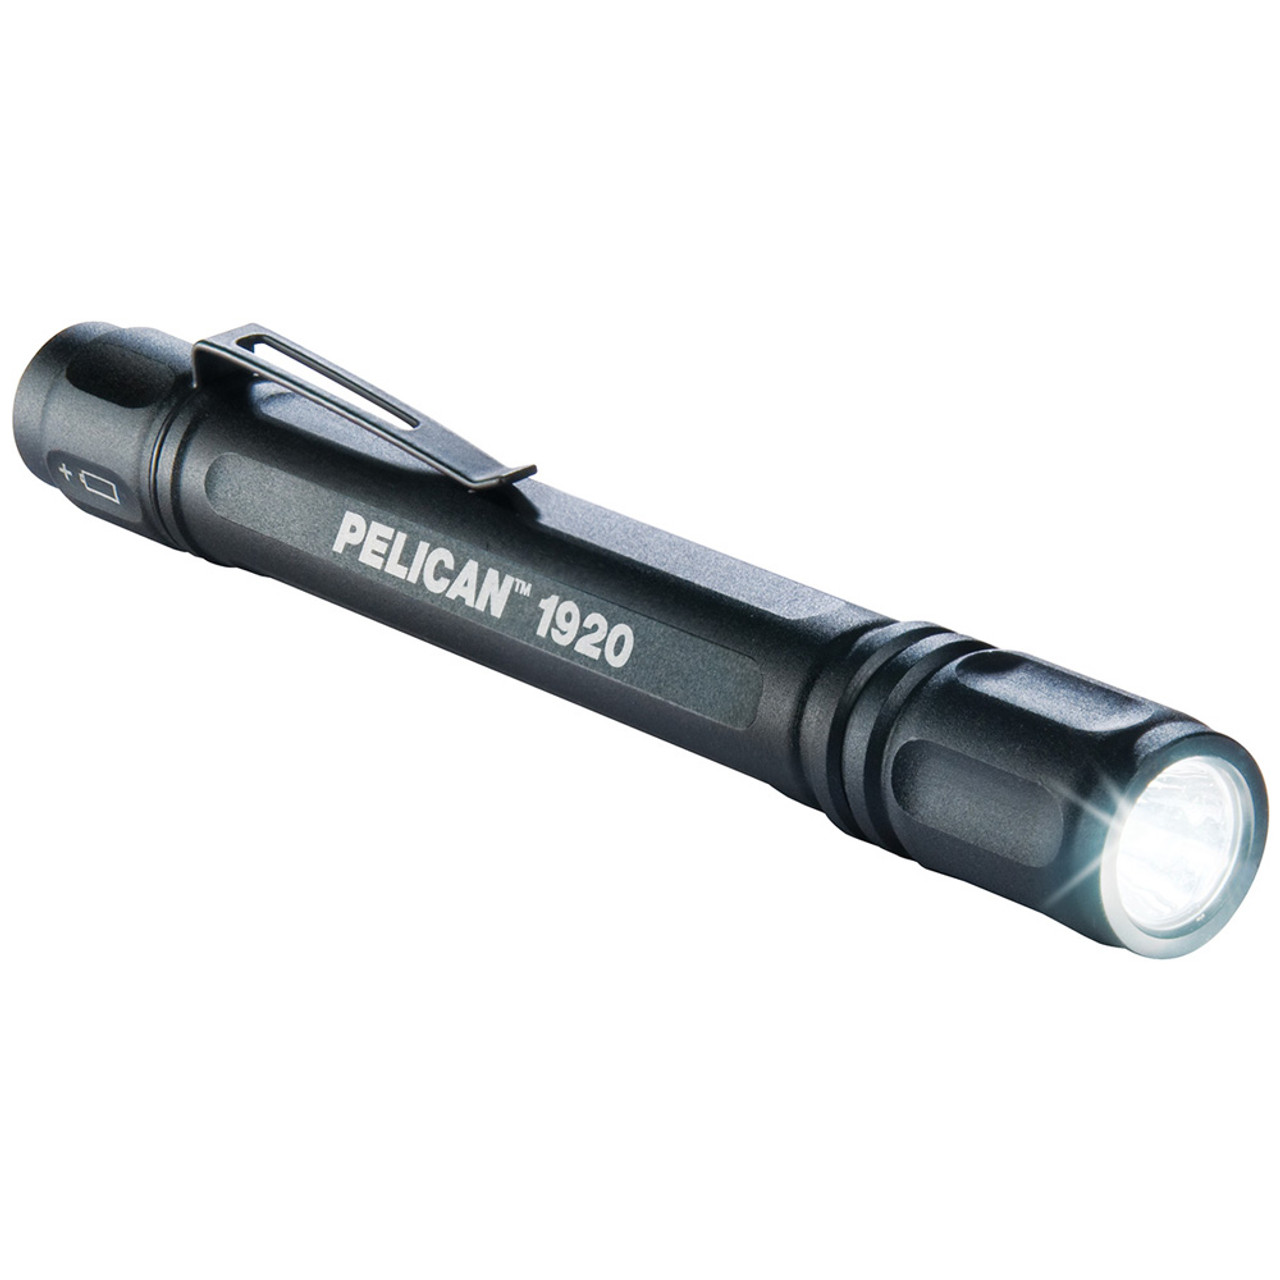 Pelican 1920 Compact LED Flashlight, (AAA Battery) (Black, Blue, Red)